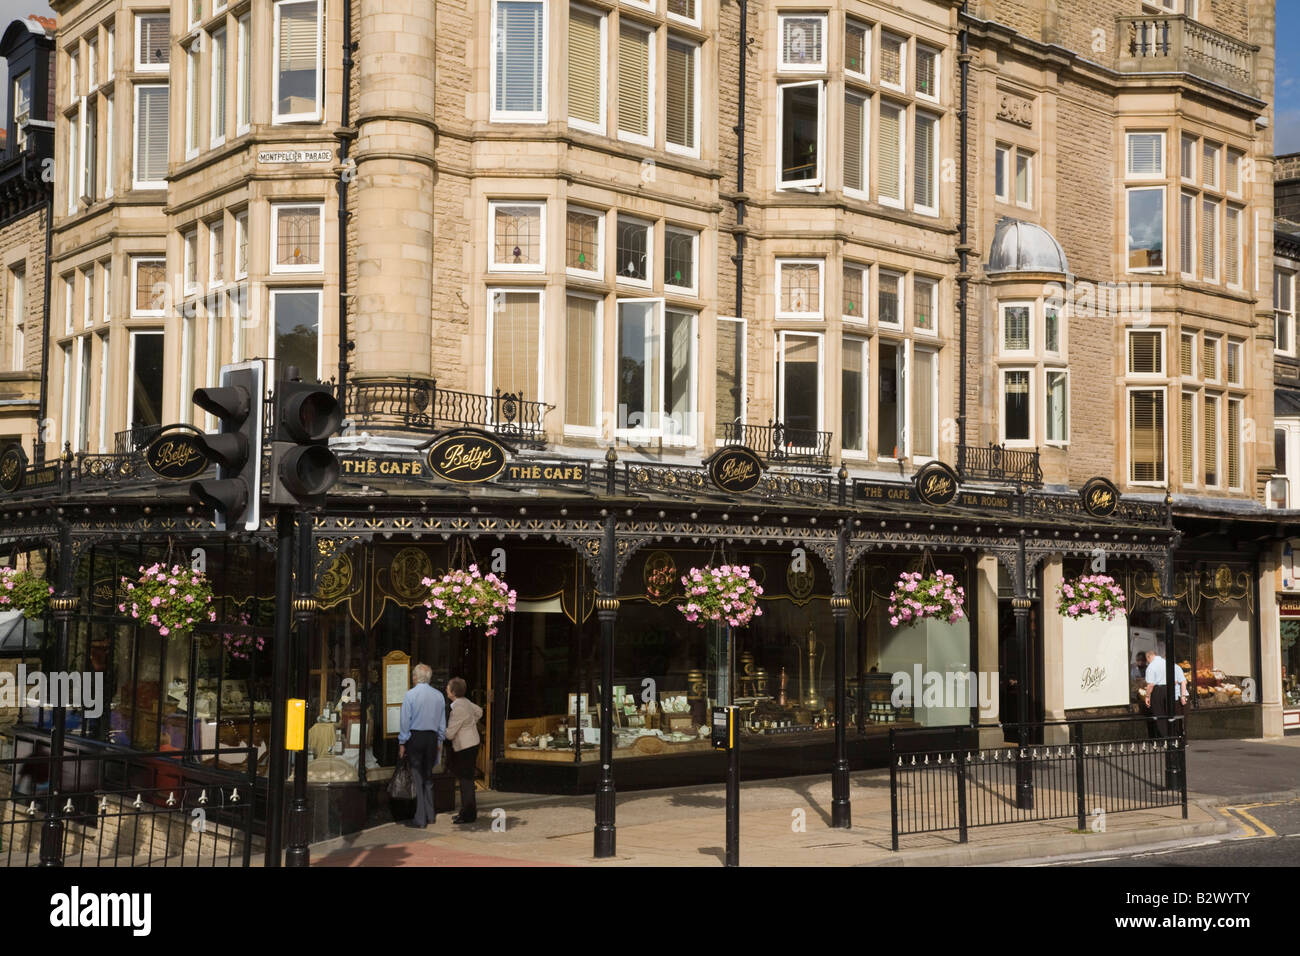 Betty's famous cafe and traditional tearooms in town centre. Harrogate North Yorkshire England UK Stock Photo